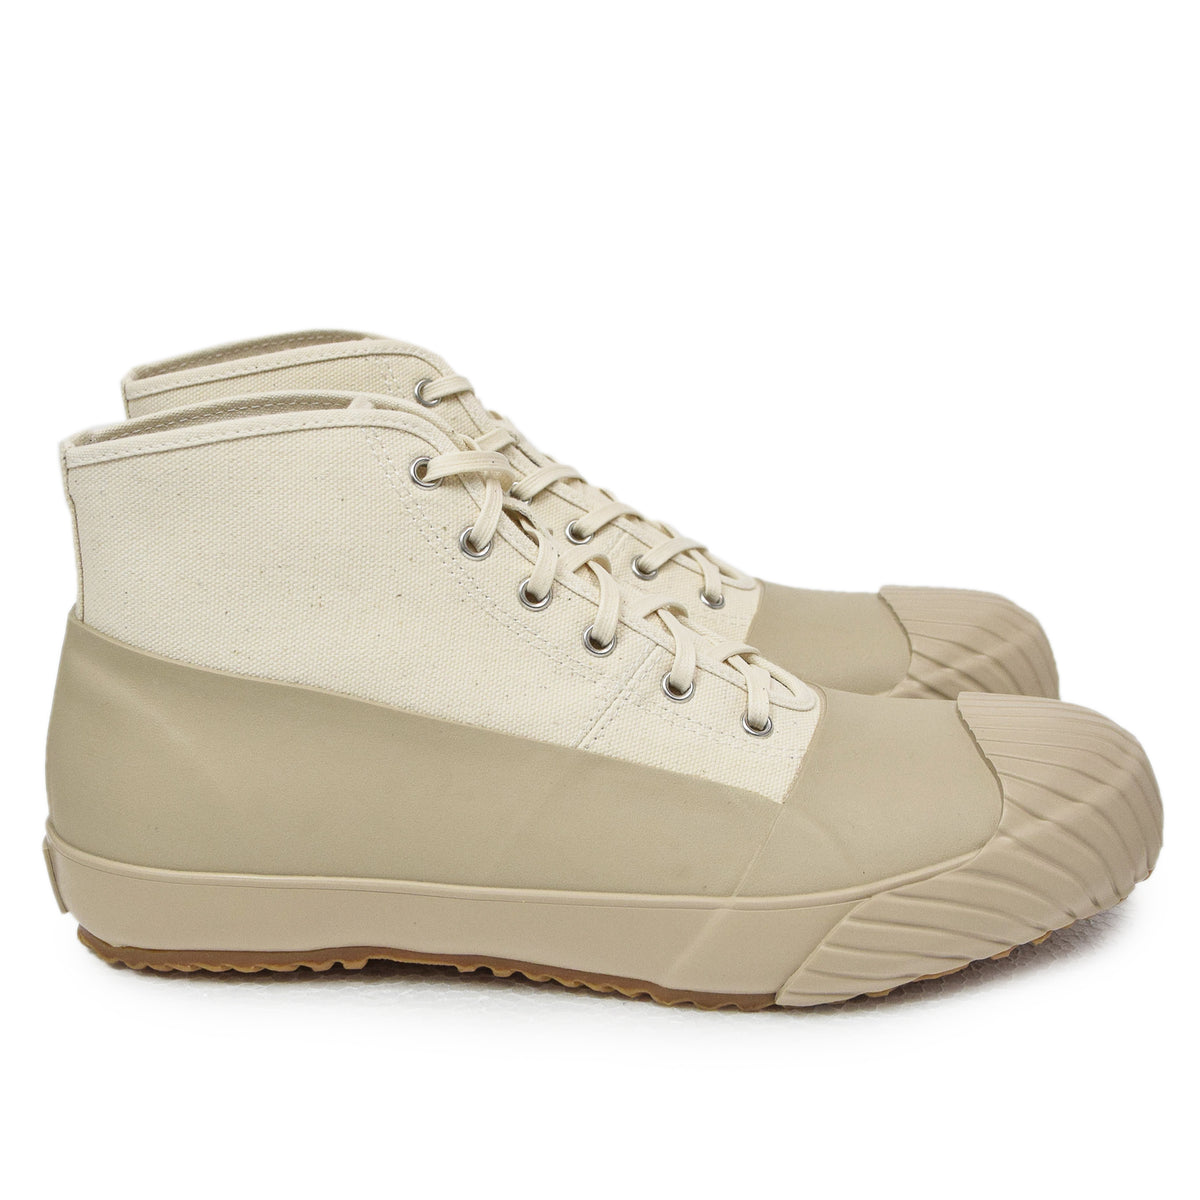 Moonstar Vulcanised Alweather Boot Beige Made In Japan side